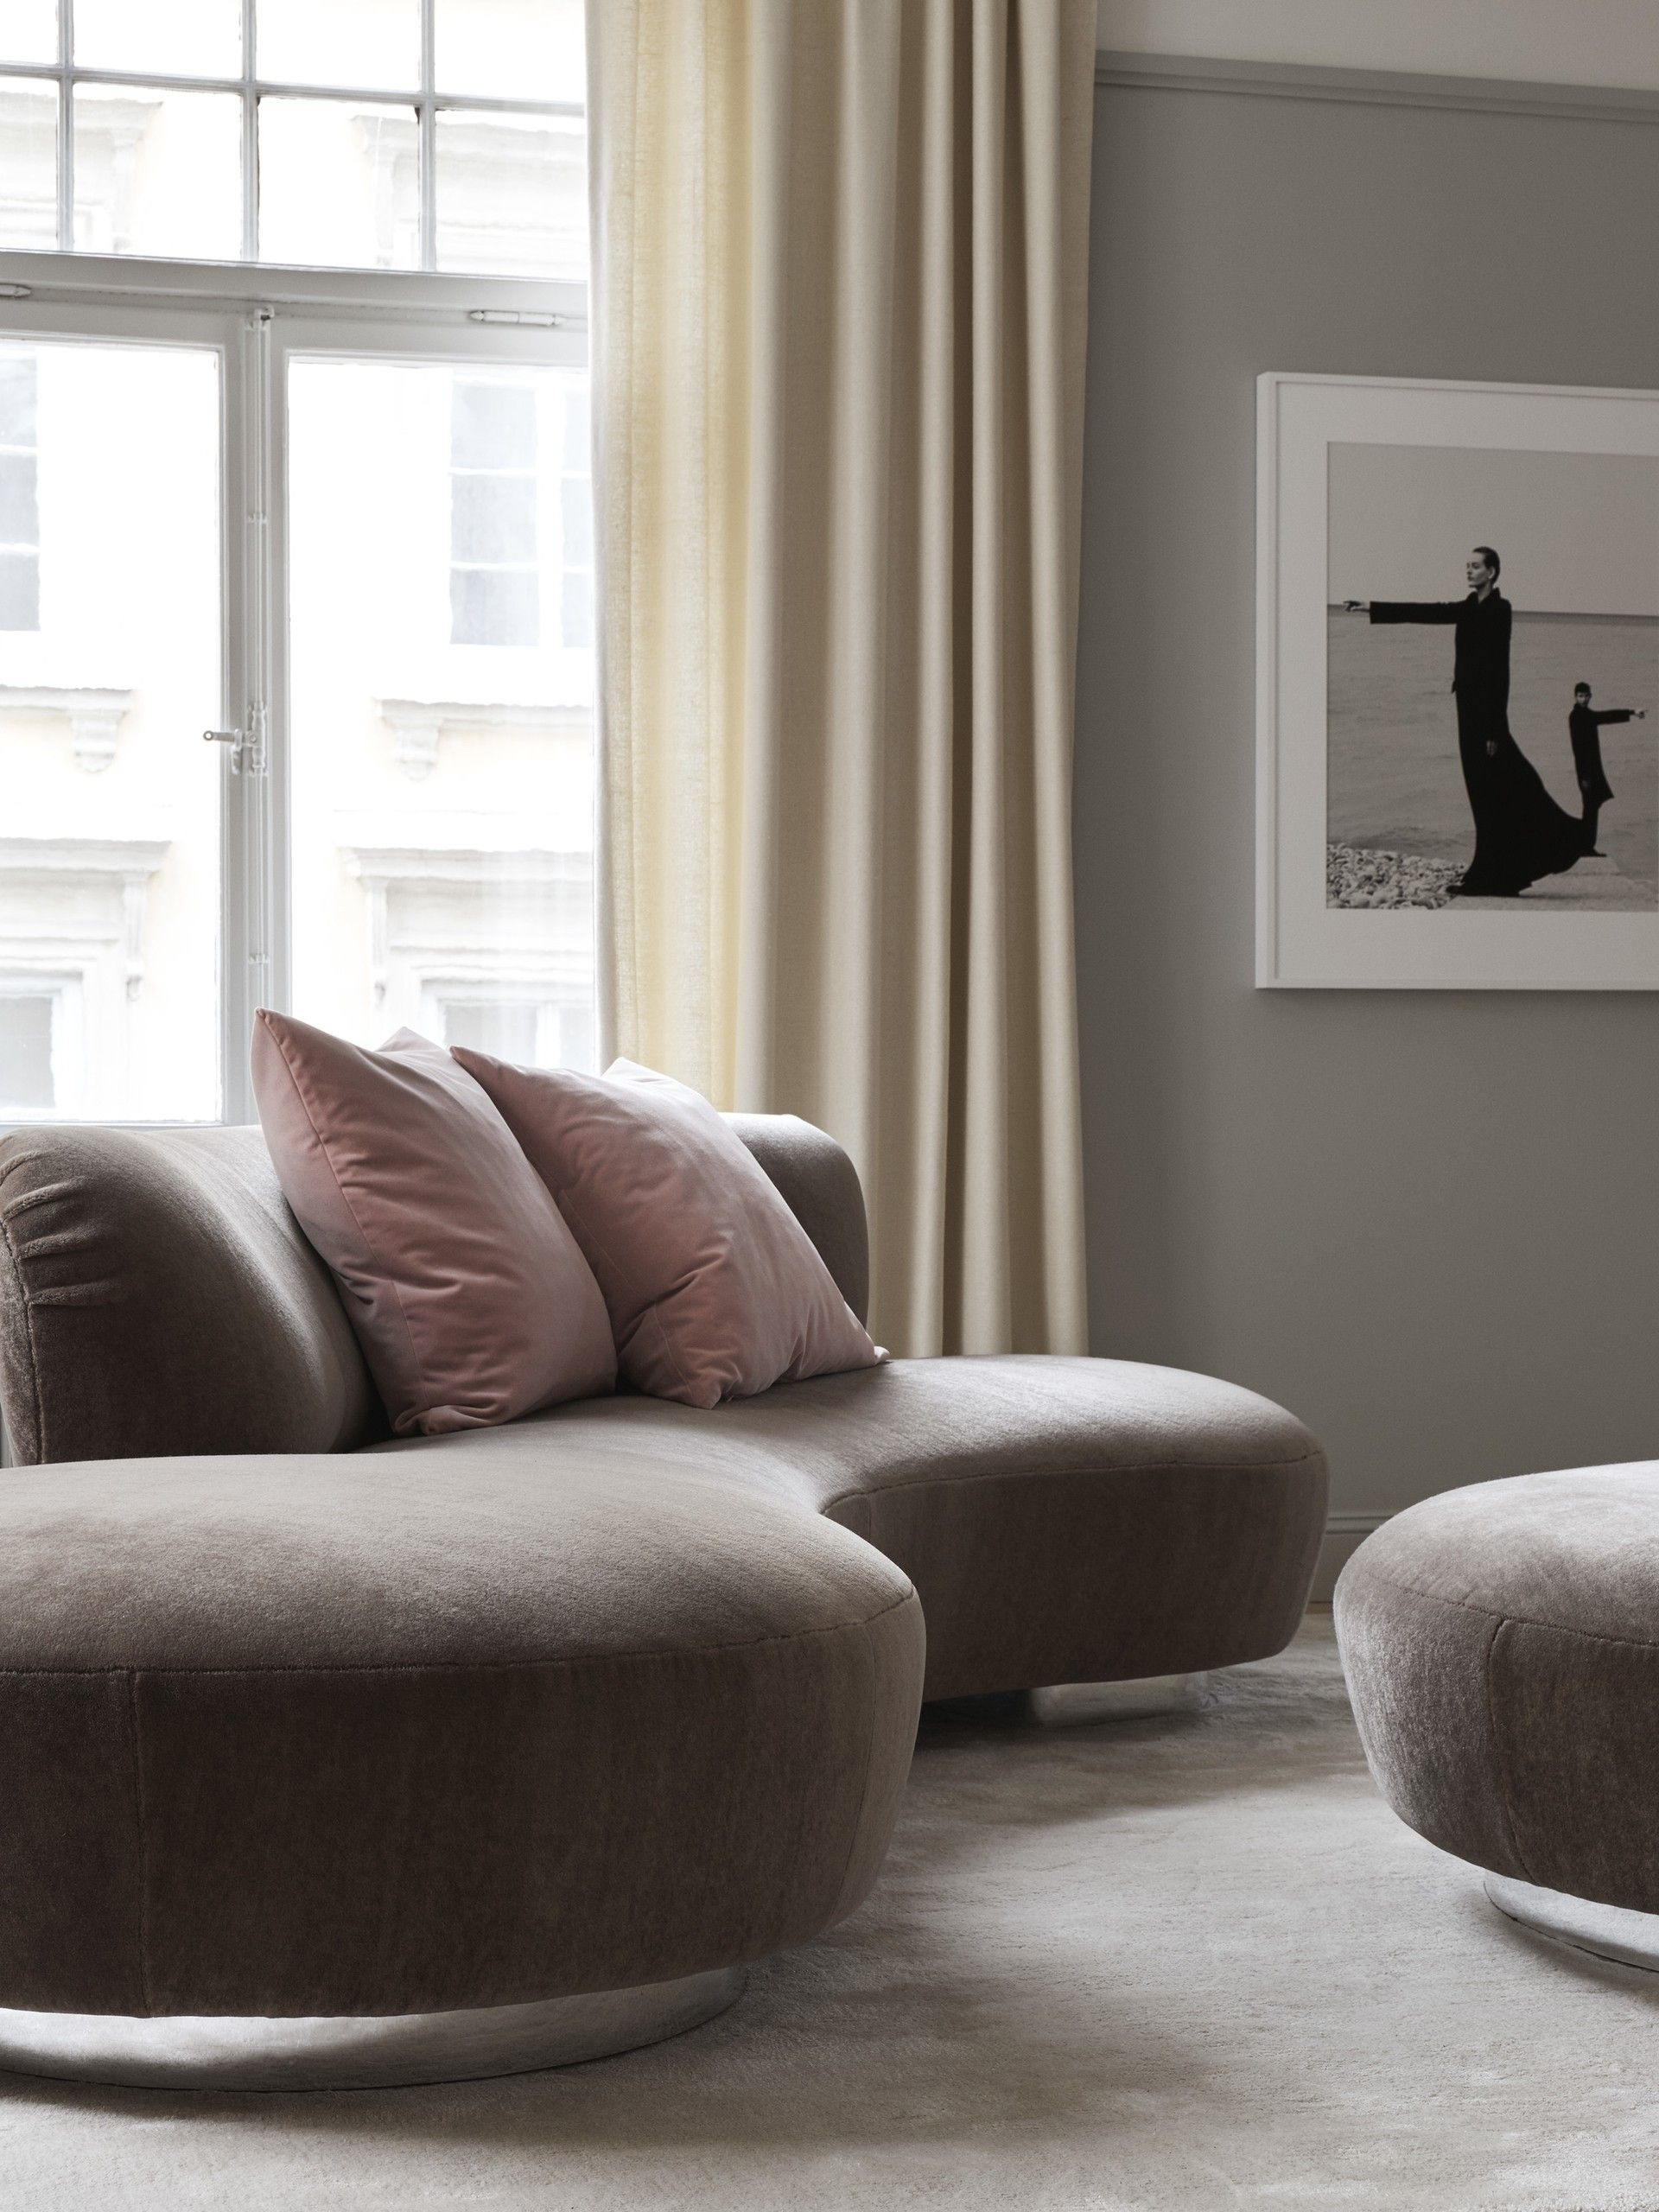 Interior Decorating By Womenontrend Classy Apartment - Mi Armario En